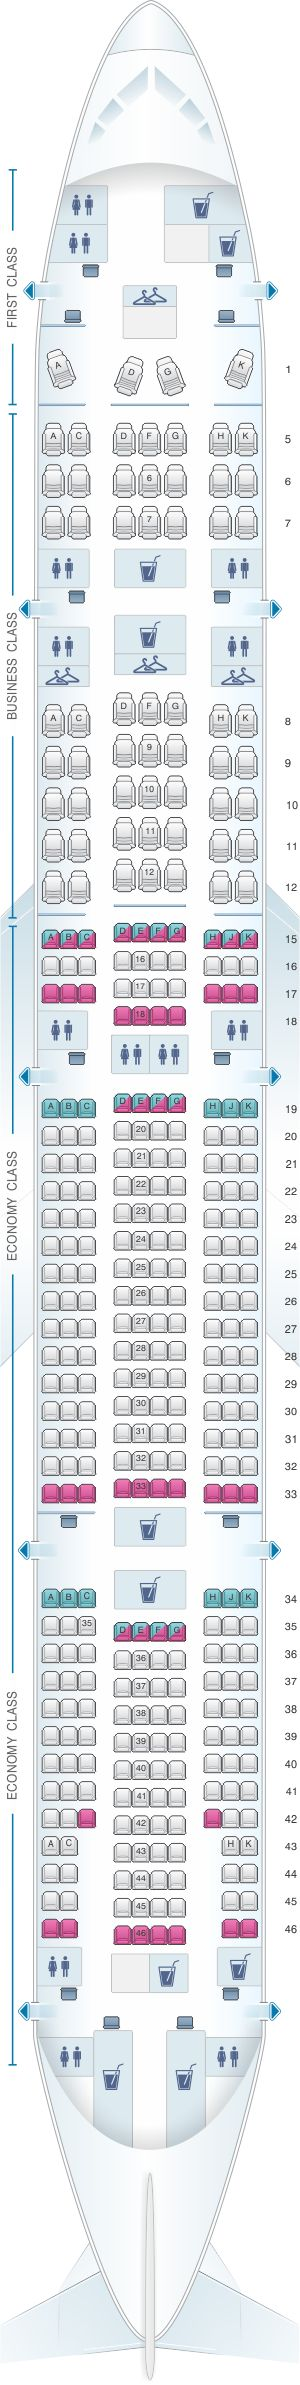 Seat map for TAM Airlines Boeing B777 300ER